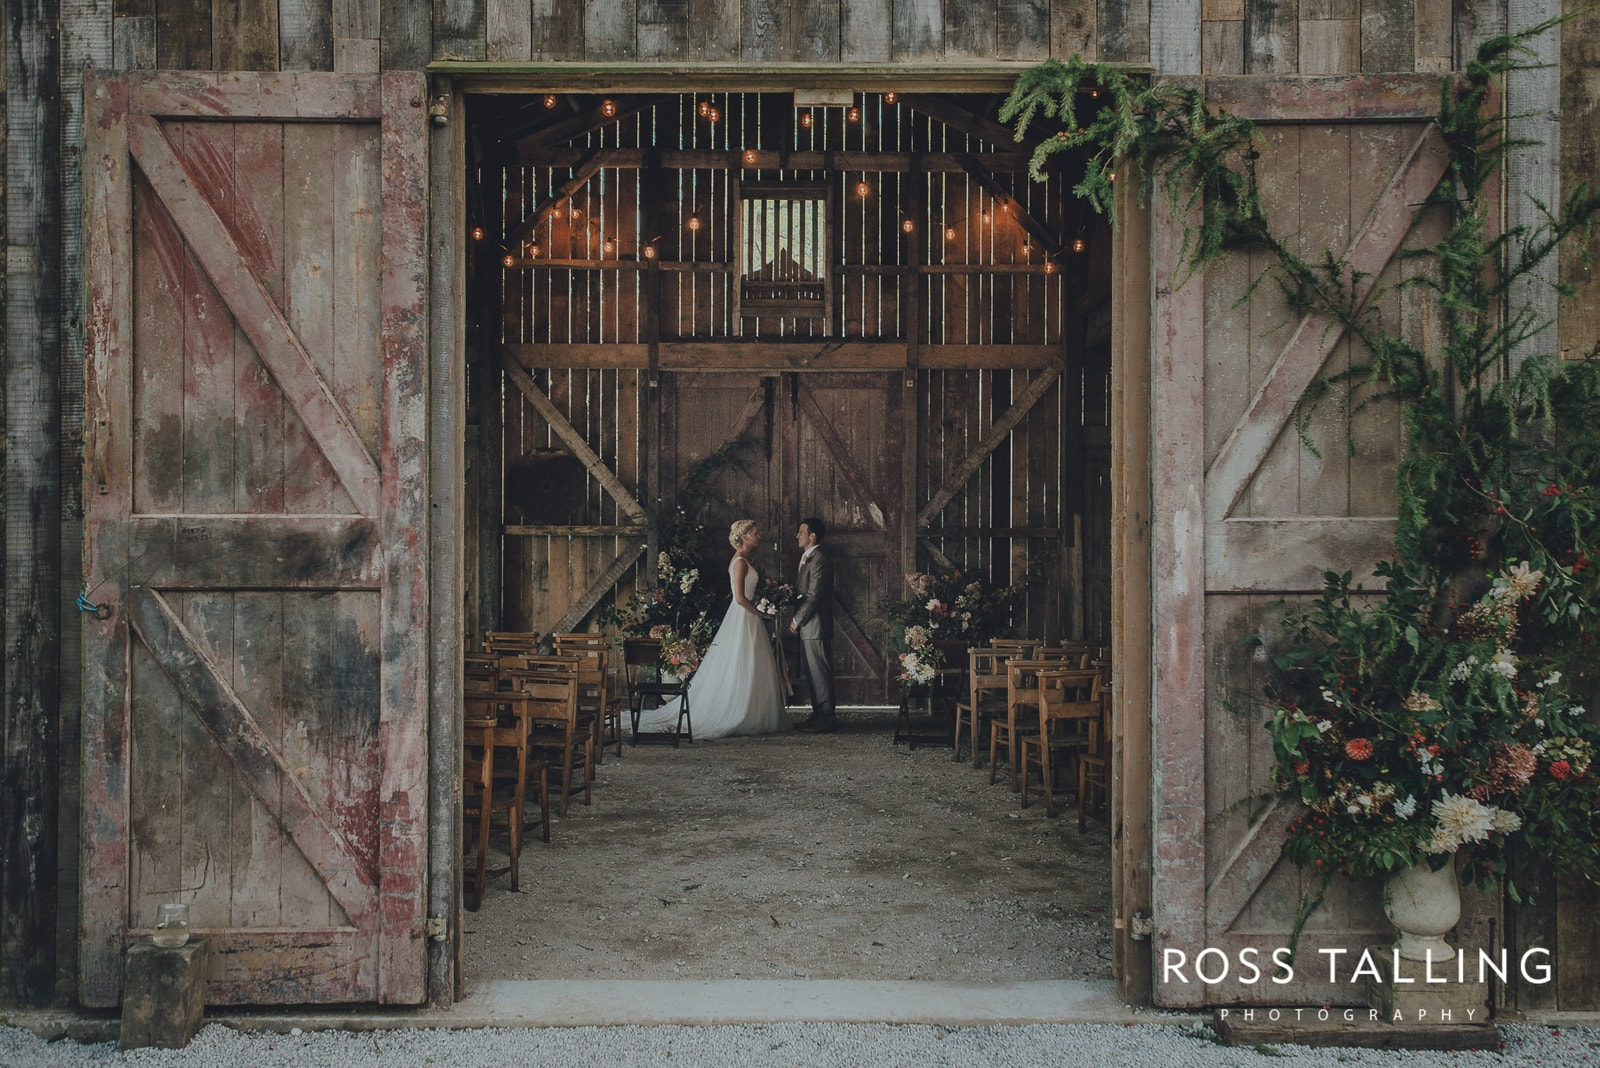 Nancarrow Farm's Rusty Barn Wedding Venue